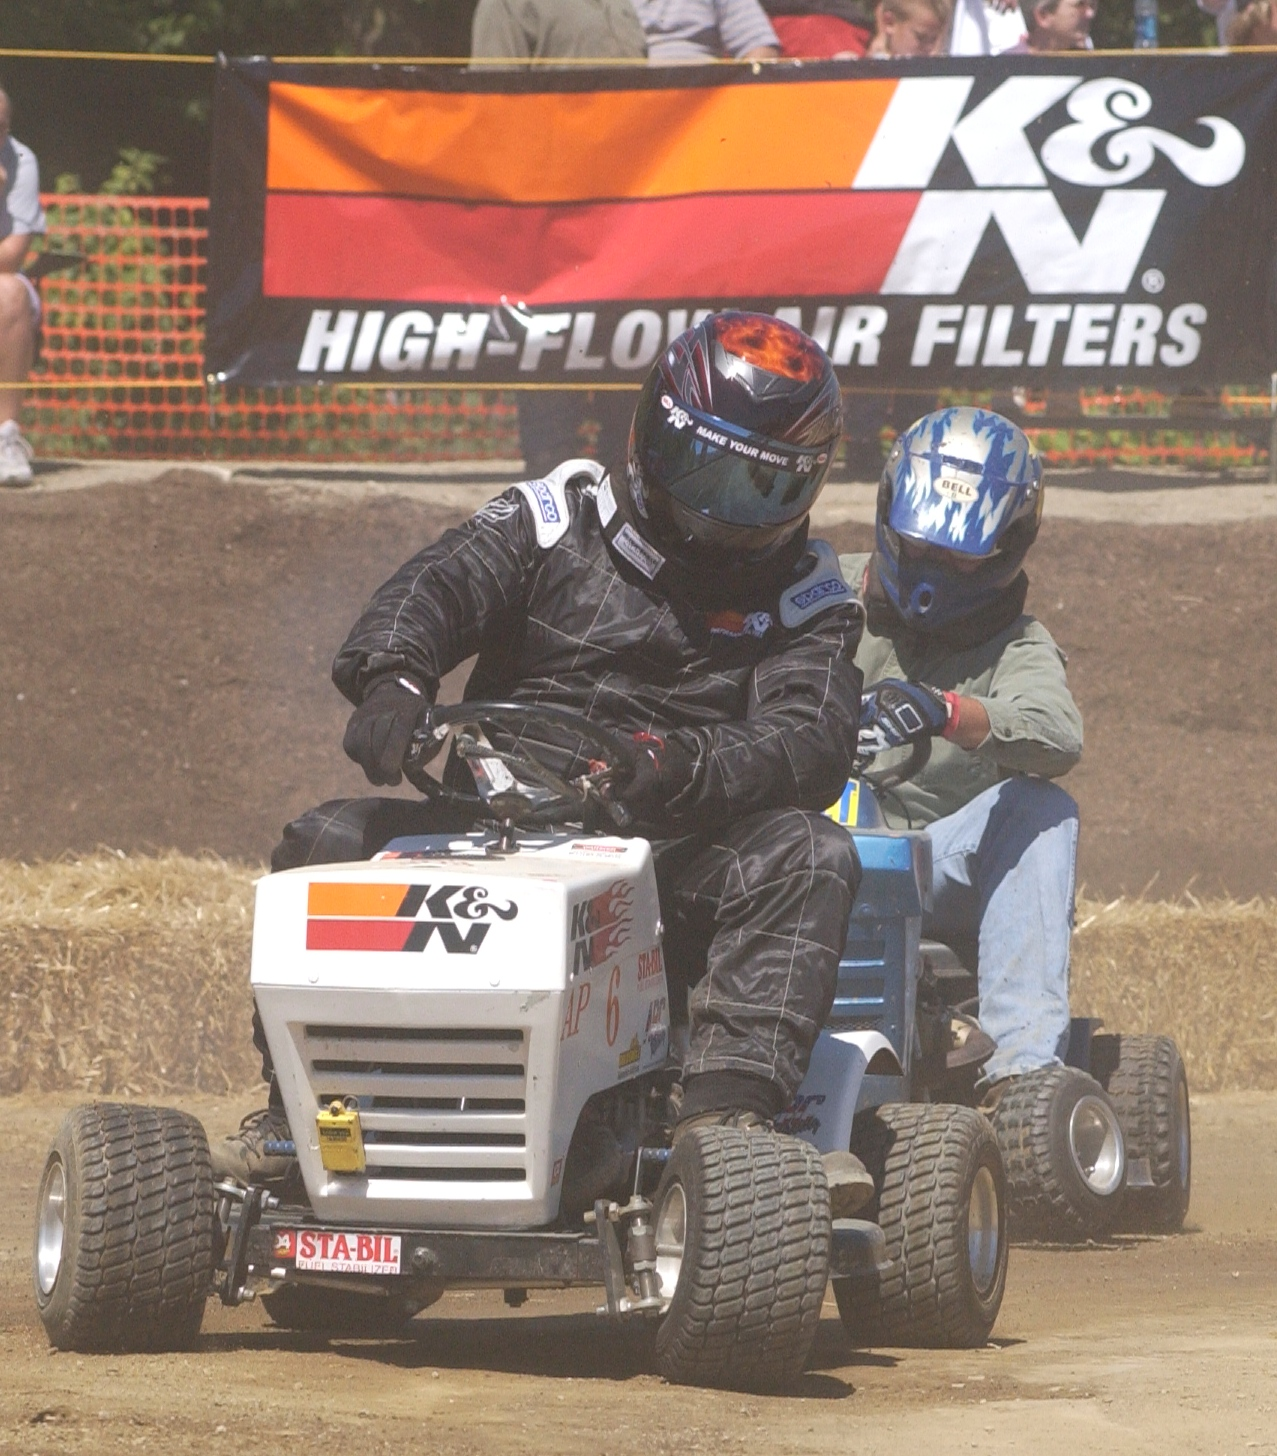 Lawn Mower Racing >> Iowa Hosts National Lawn Mower Races STA-BIL Puts Hawkeye State On The Cutting Edge of American ...